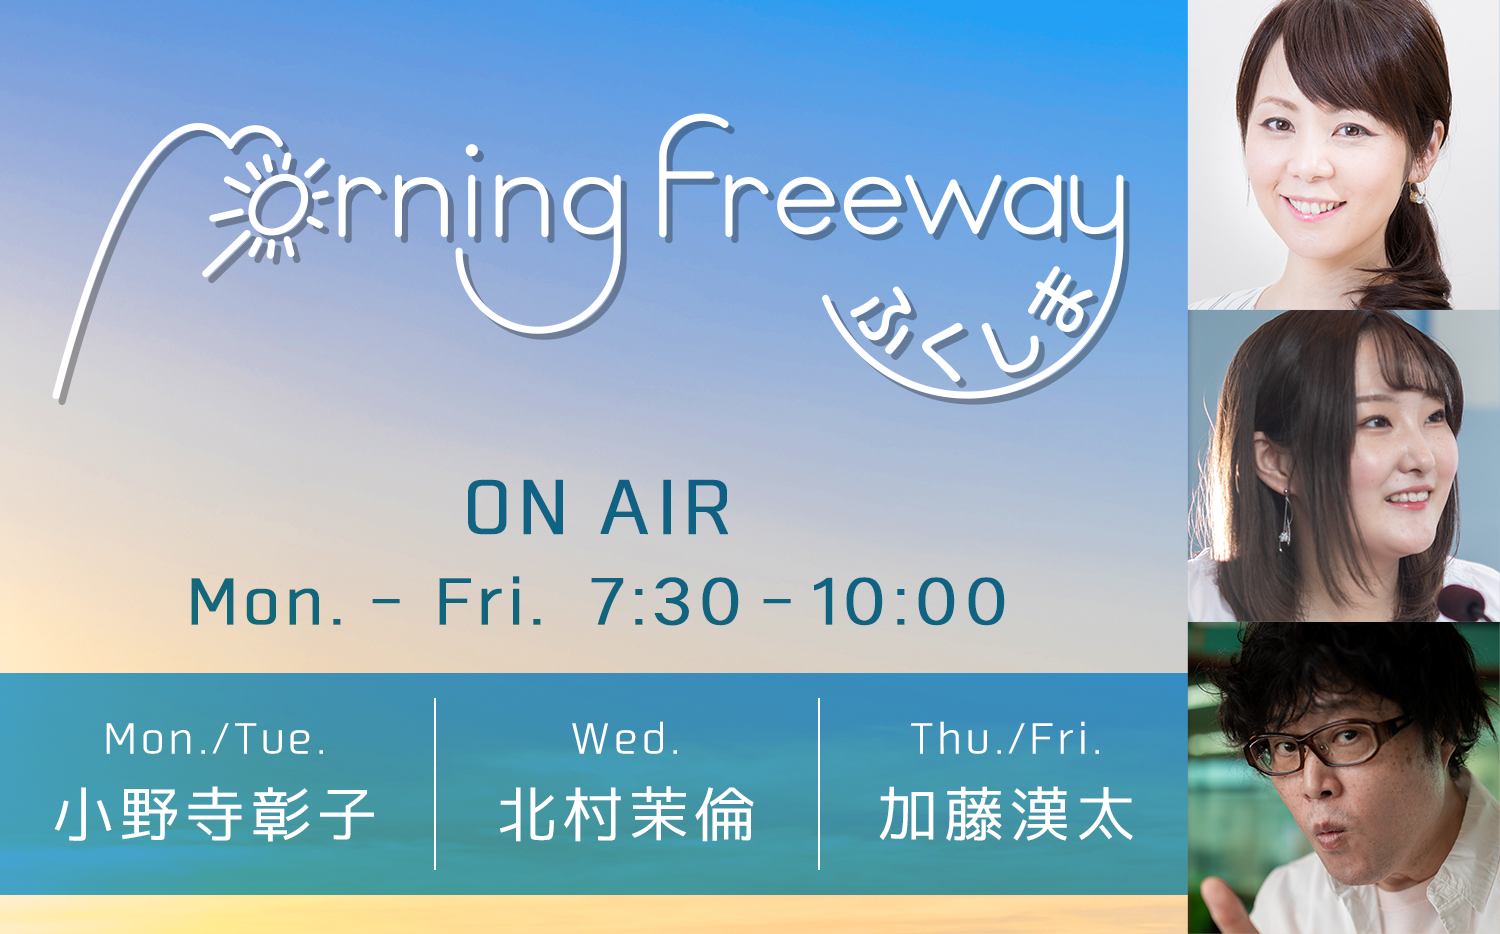 Morning Freeway ふくしま